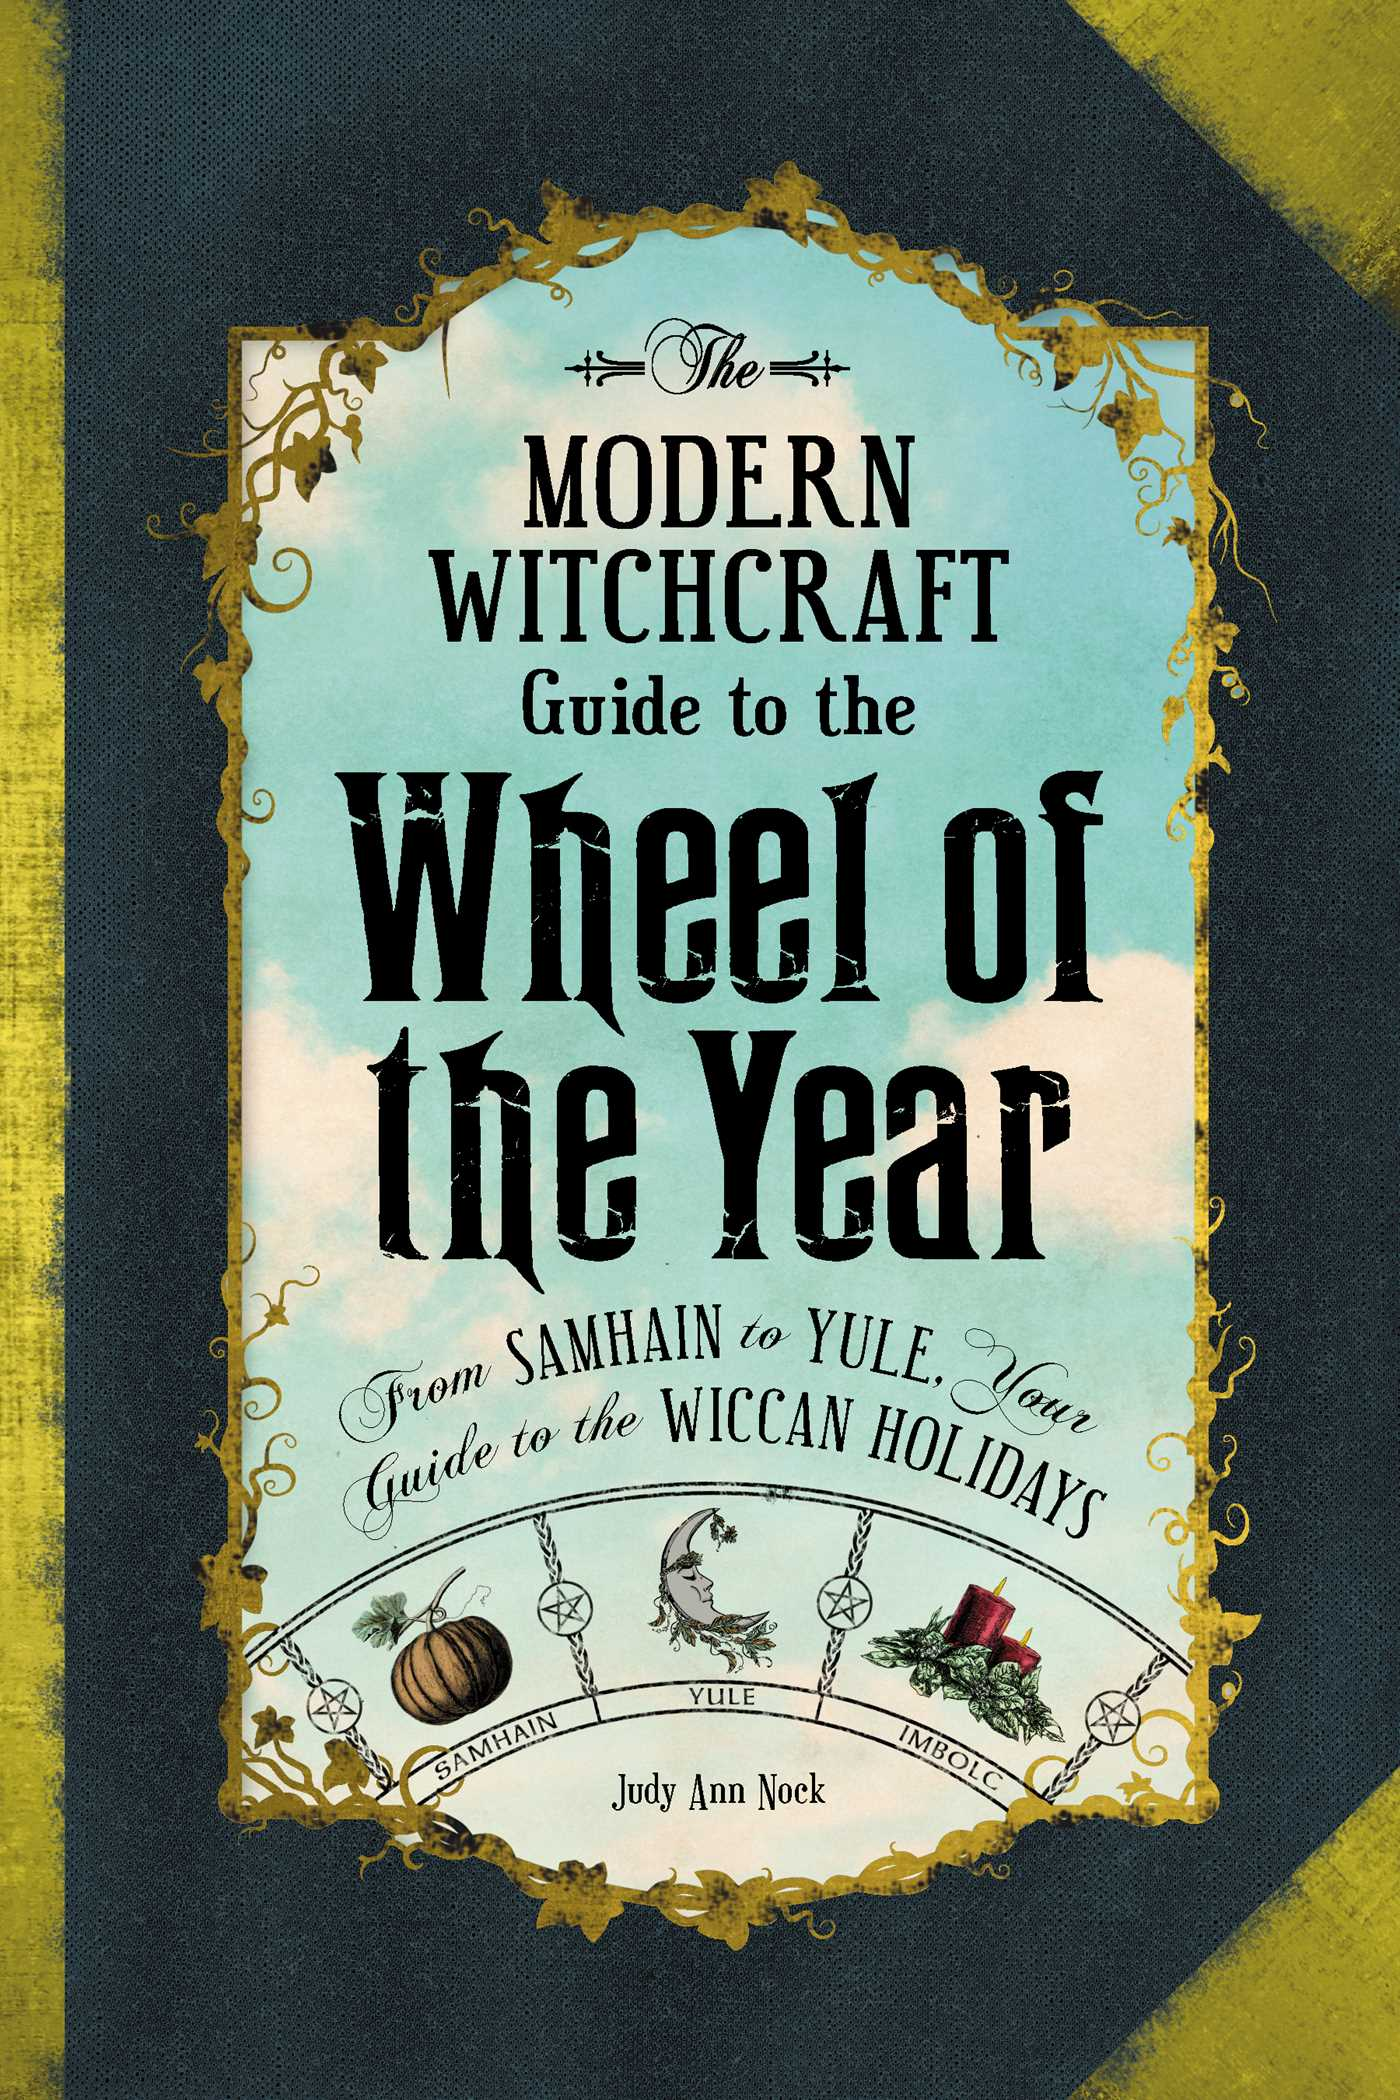 The modern witchcraft guide to the wheel of the year 9781507205372 hr